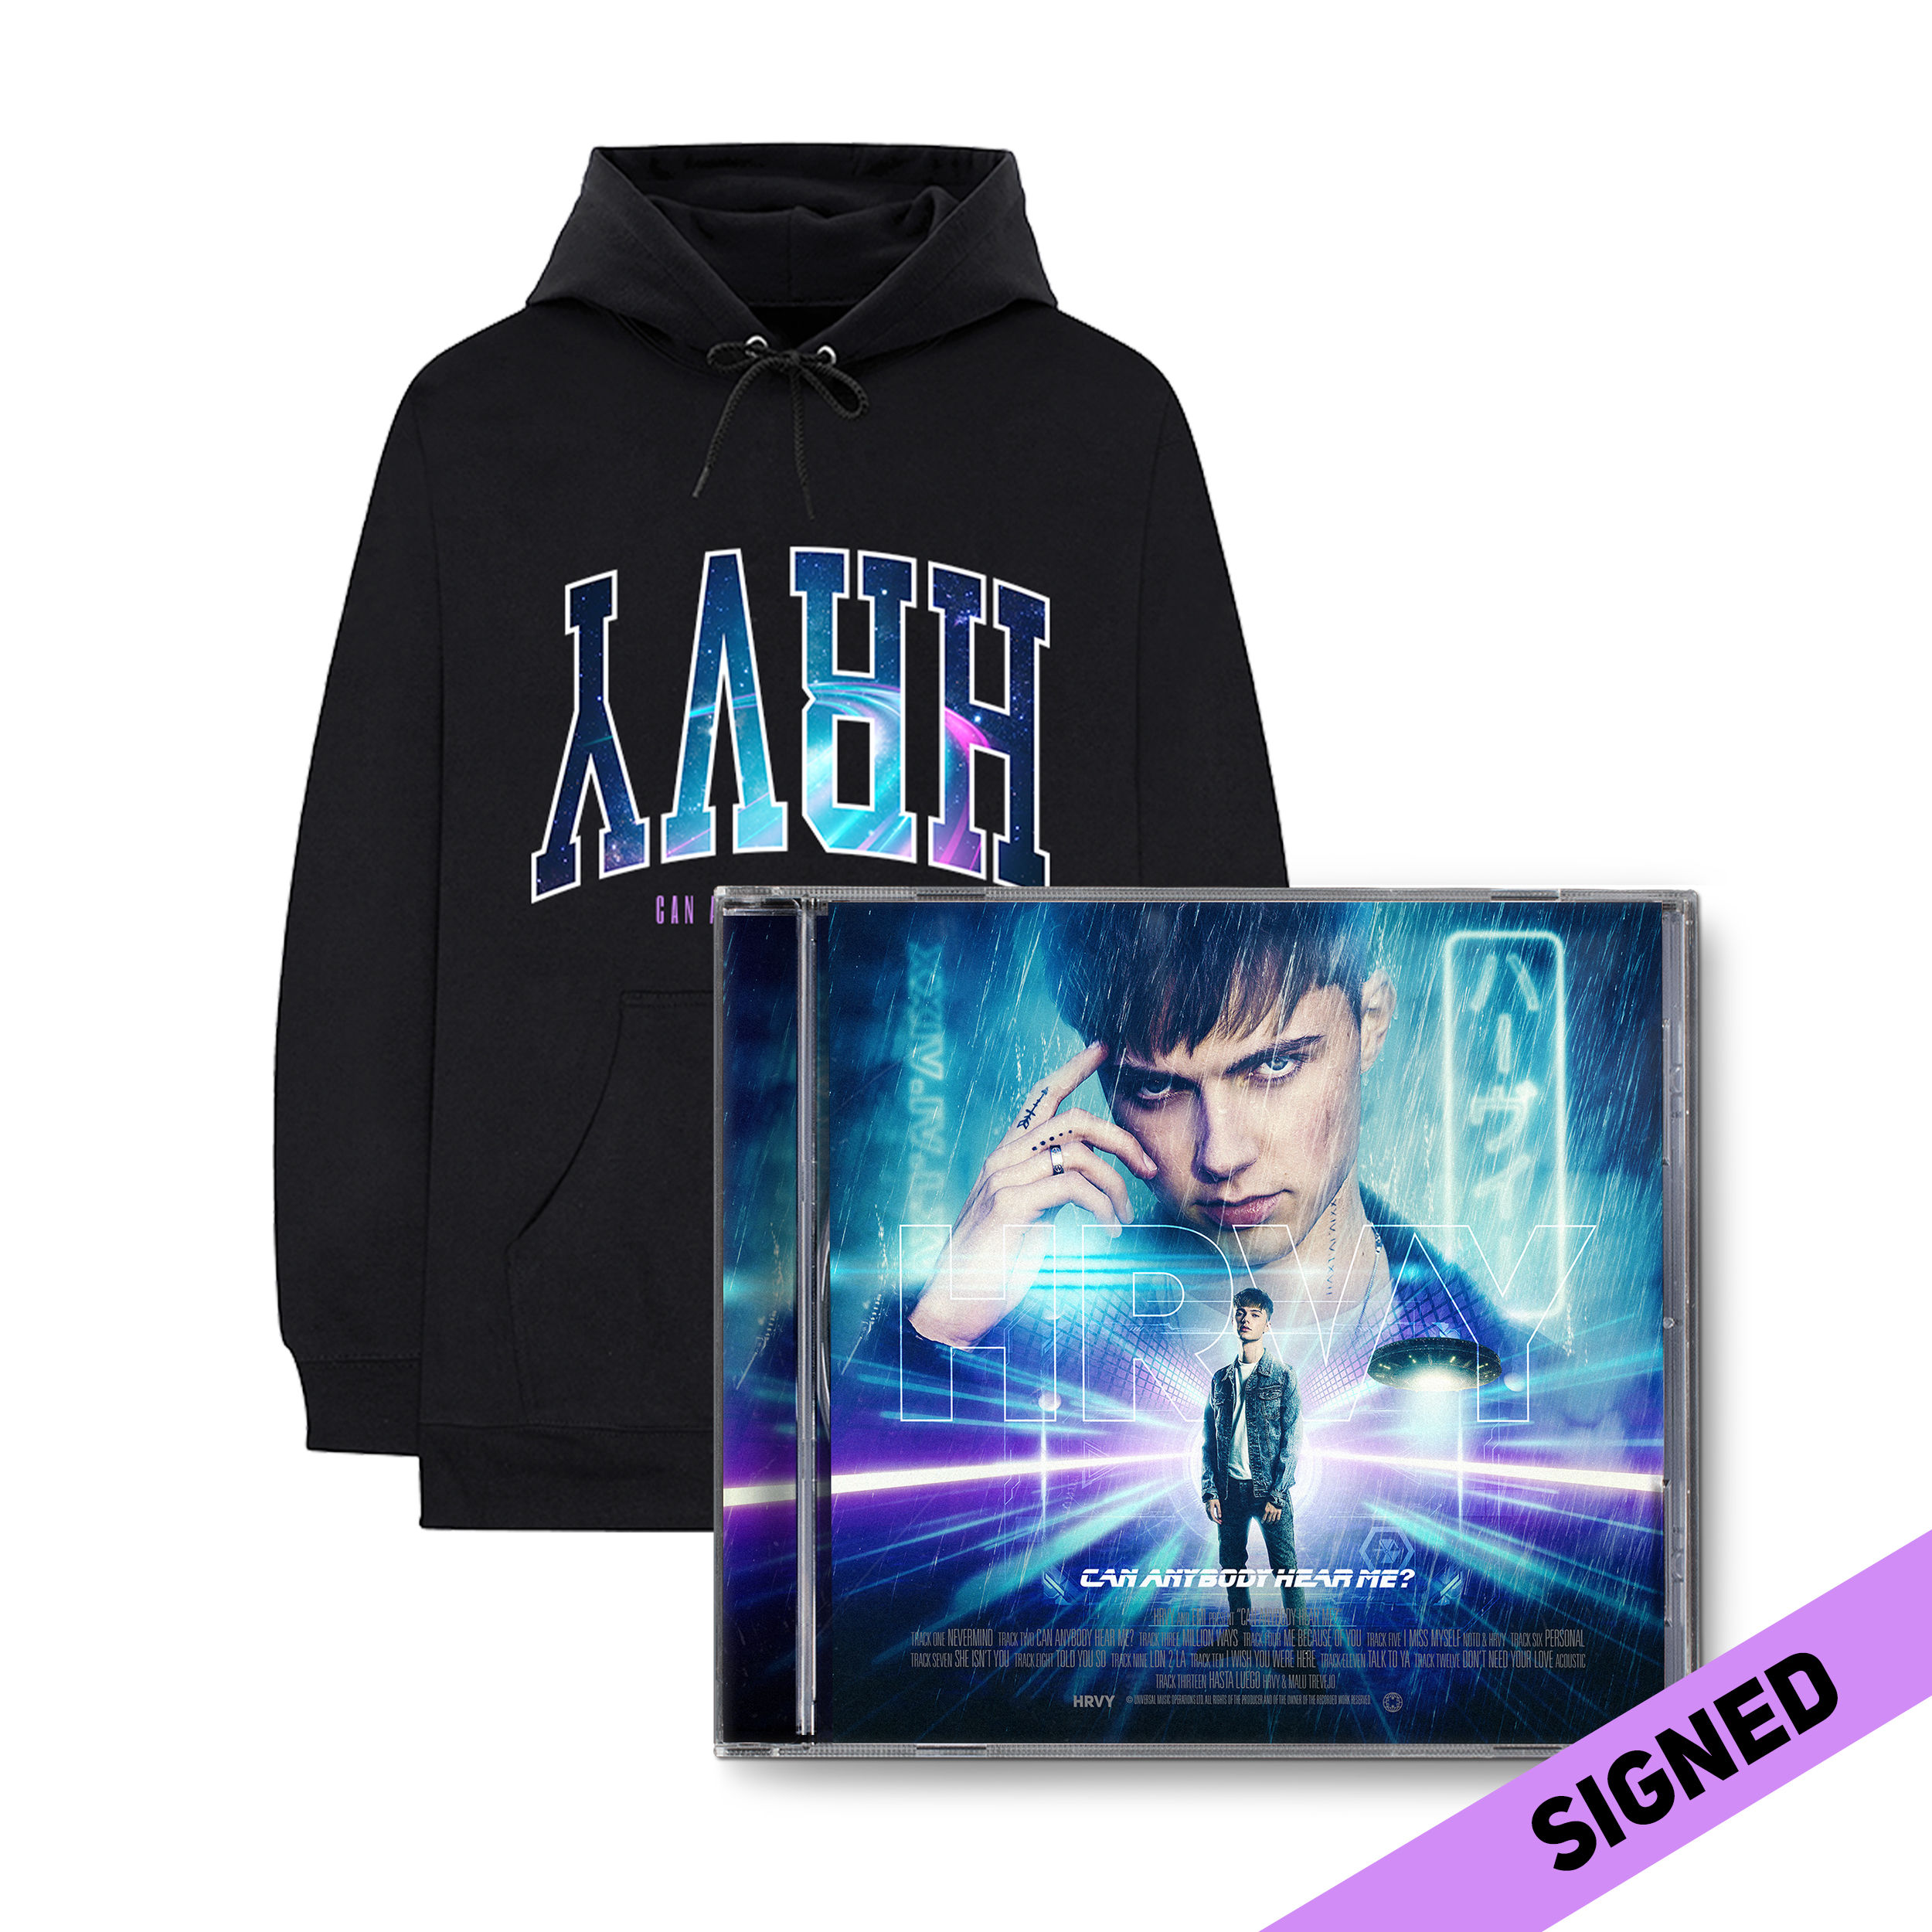 HRVY: Can Anybody Hear Me? Signed Deluxe CD & Hoodie